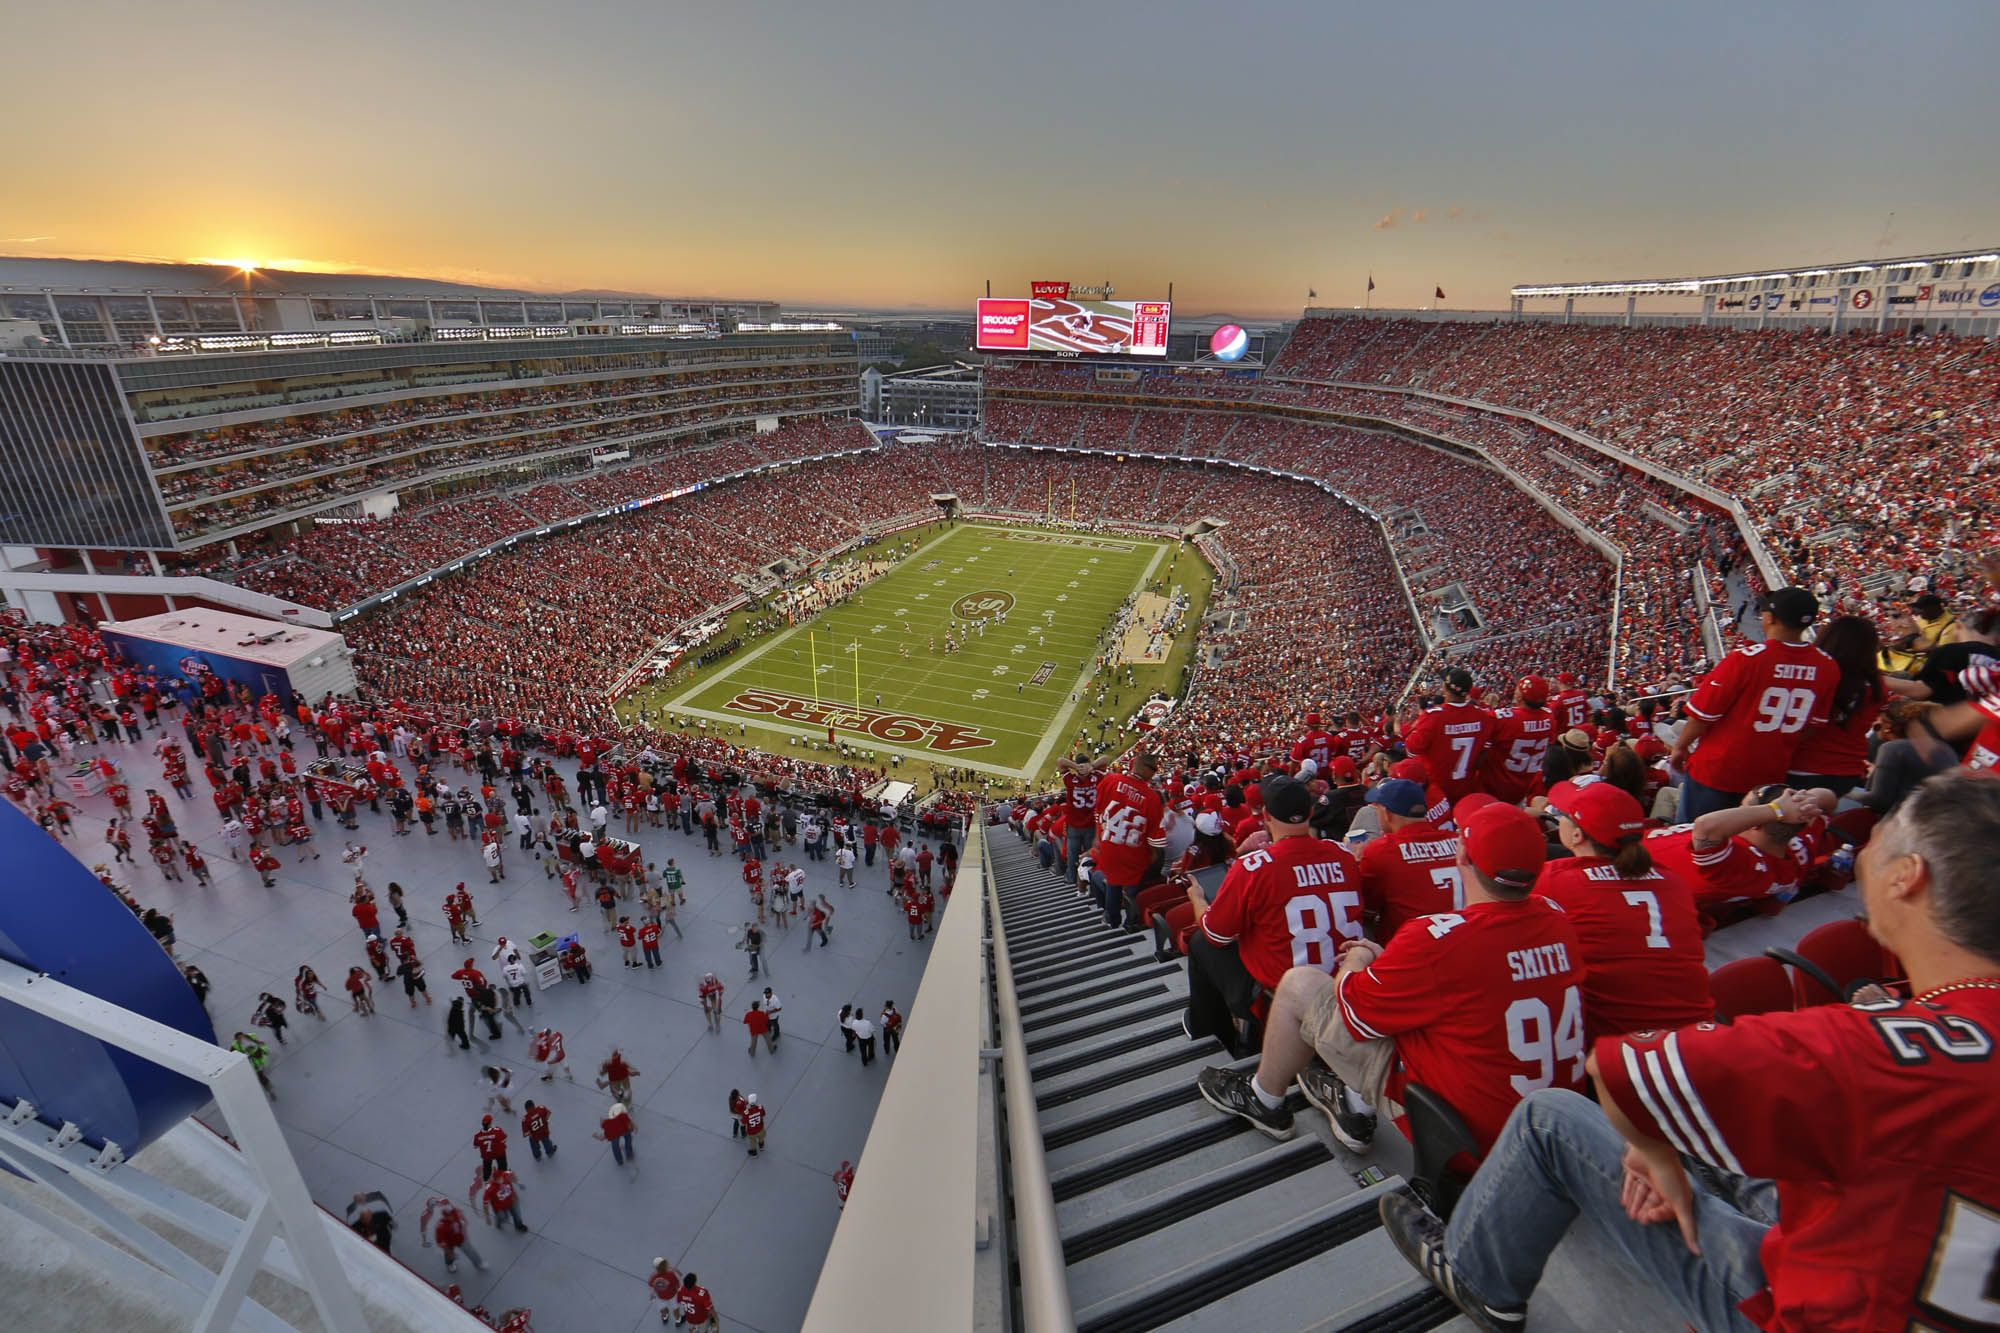 Levi's Stadium, 49ers, super bowl 50, vip tour